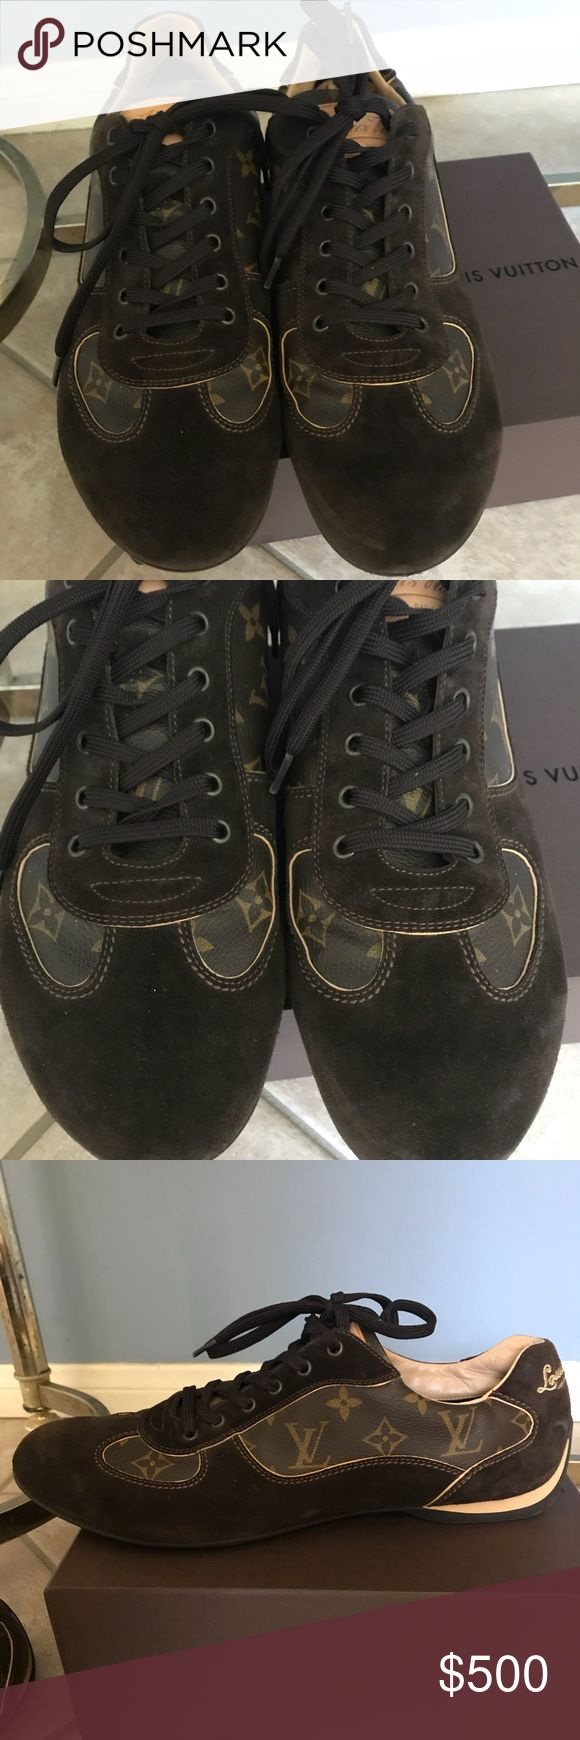 Size 10 Louis Vuitton mens Sneakers. Brand new Size 10 Louis Vuitton mens Sneakers, BRAND NEW in their bags and box! Great deal!! Louis Vuitton Shoes Sneakers